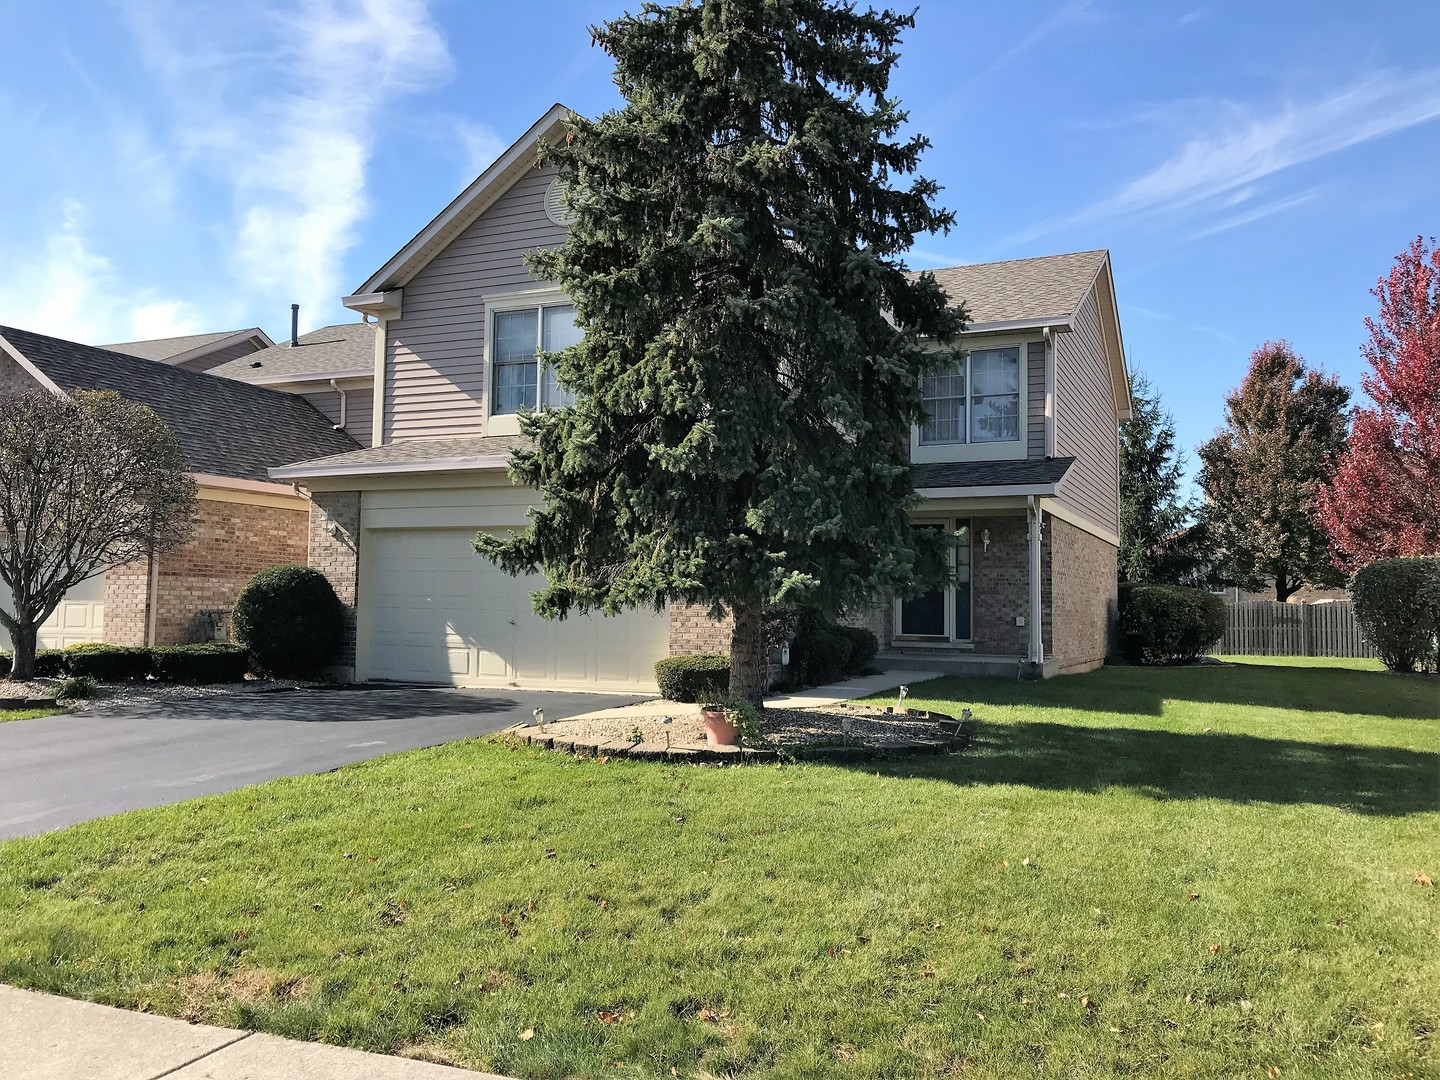 7764 Bristol Park Drive, Tinley Park in Cook County, IL 60477 Home for Sale